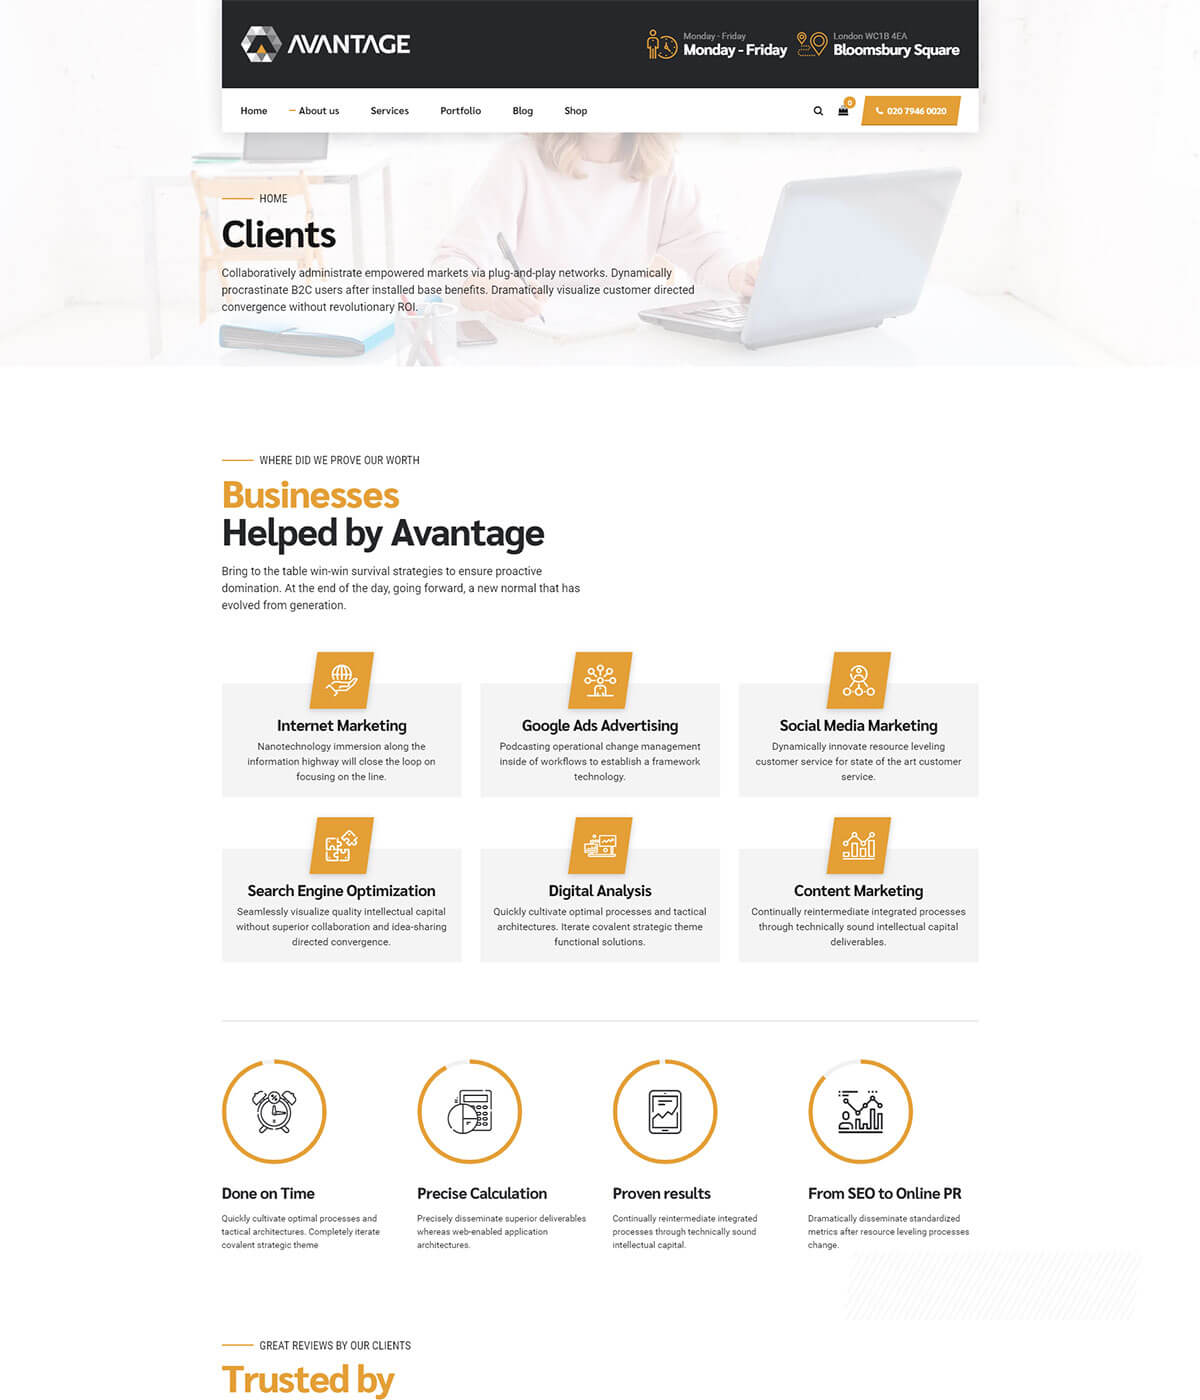 http://avantage.bold-themes.com/wp-content/uploads/2019/05/marketing-05-clients.jpg